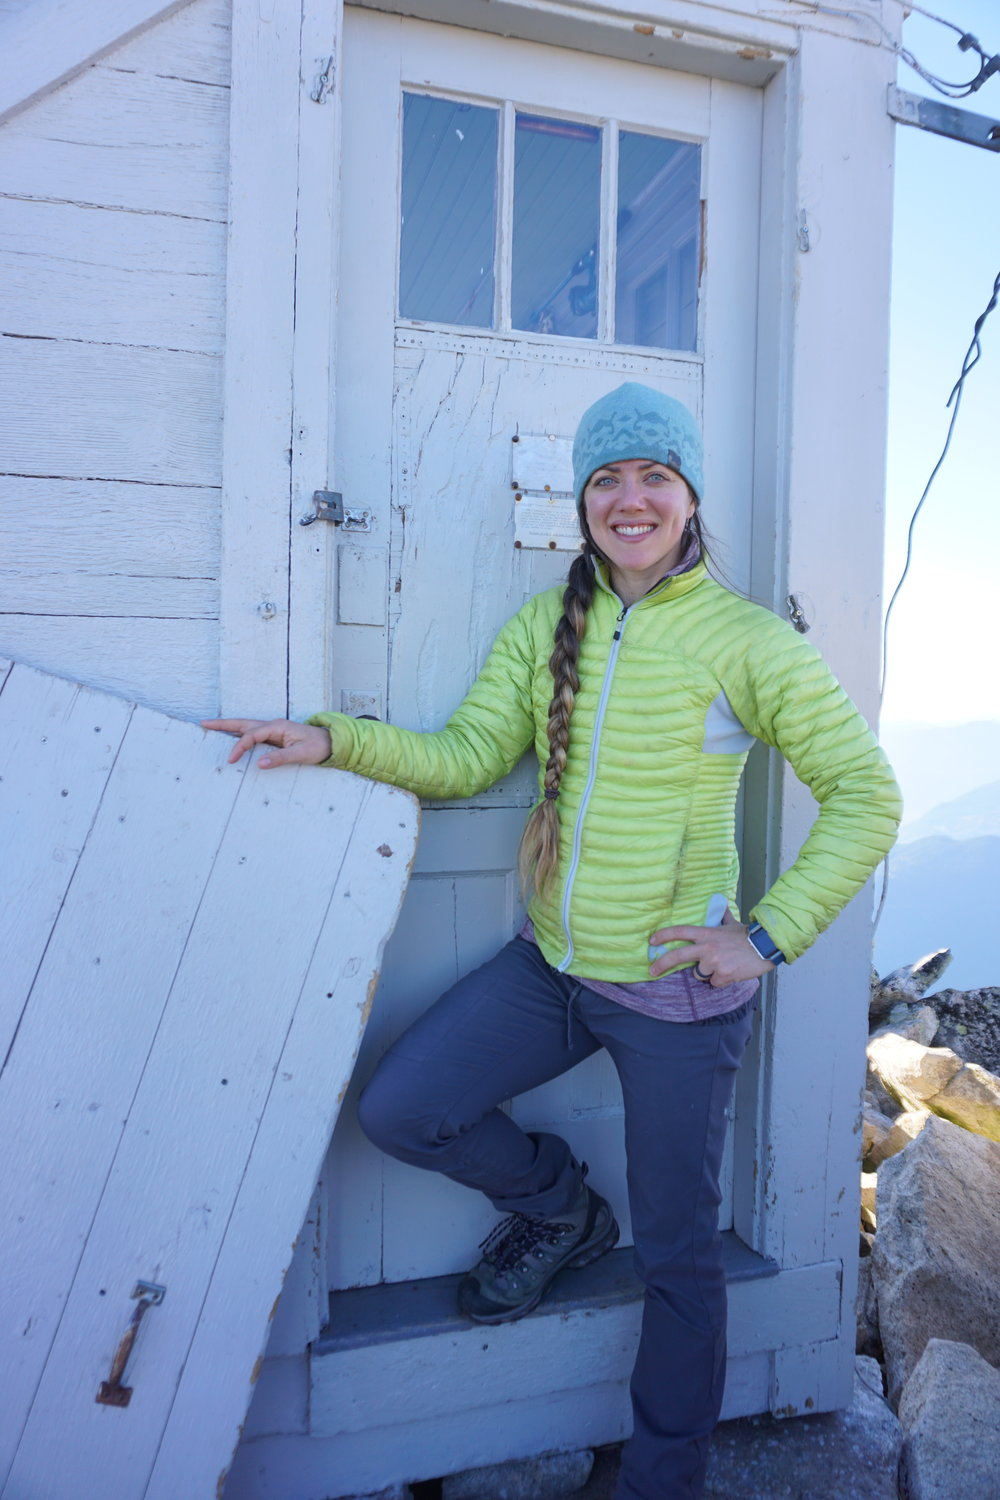 Me, at a fire lookout (my husband and I spent the night in the lookout!). This photo has nothing to do with the story, it just makes me happy.